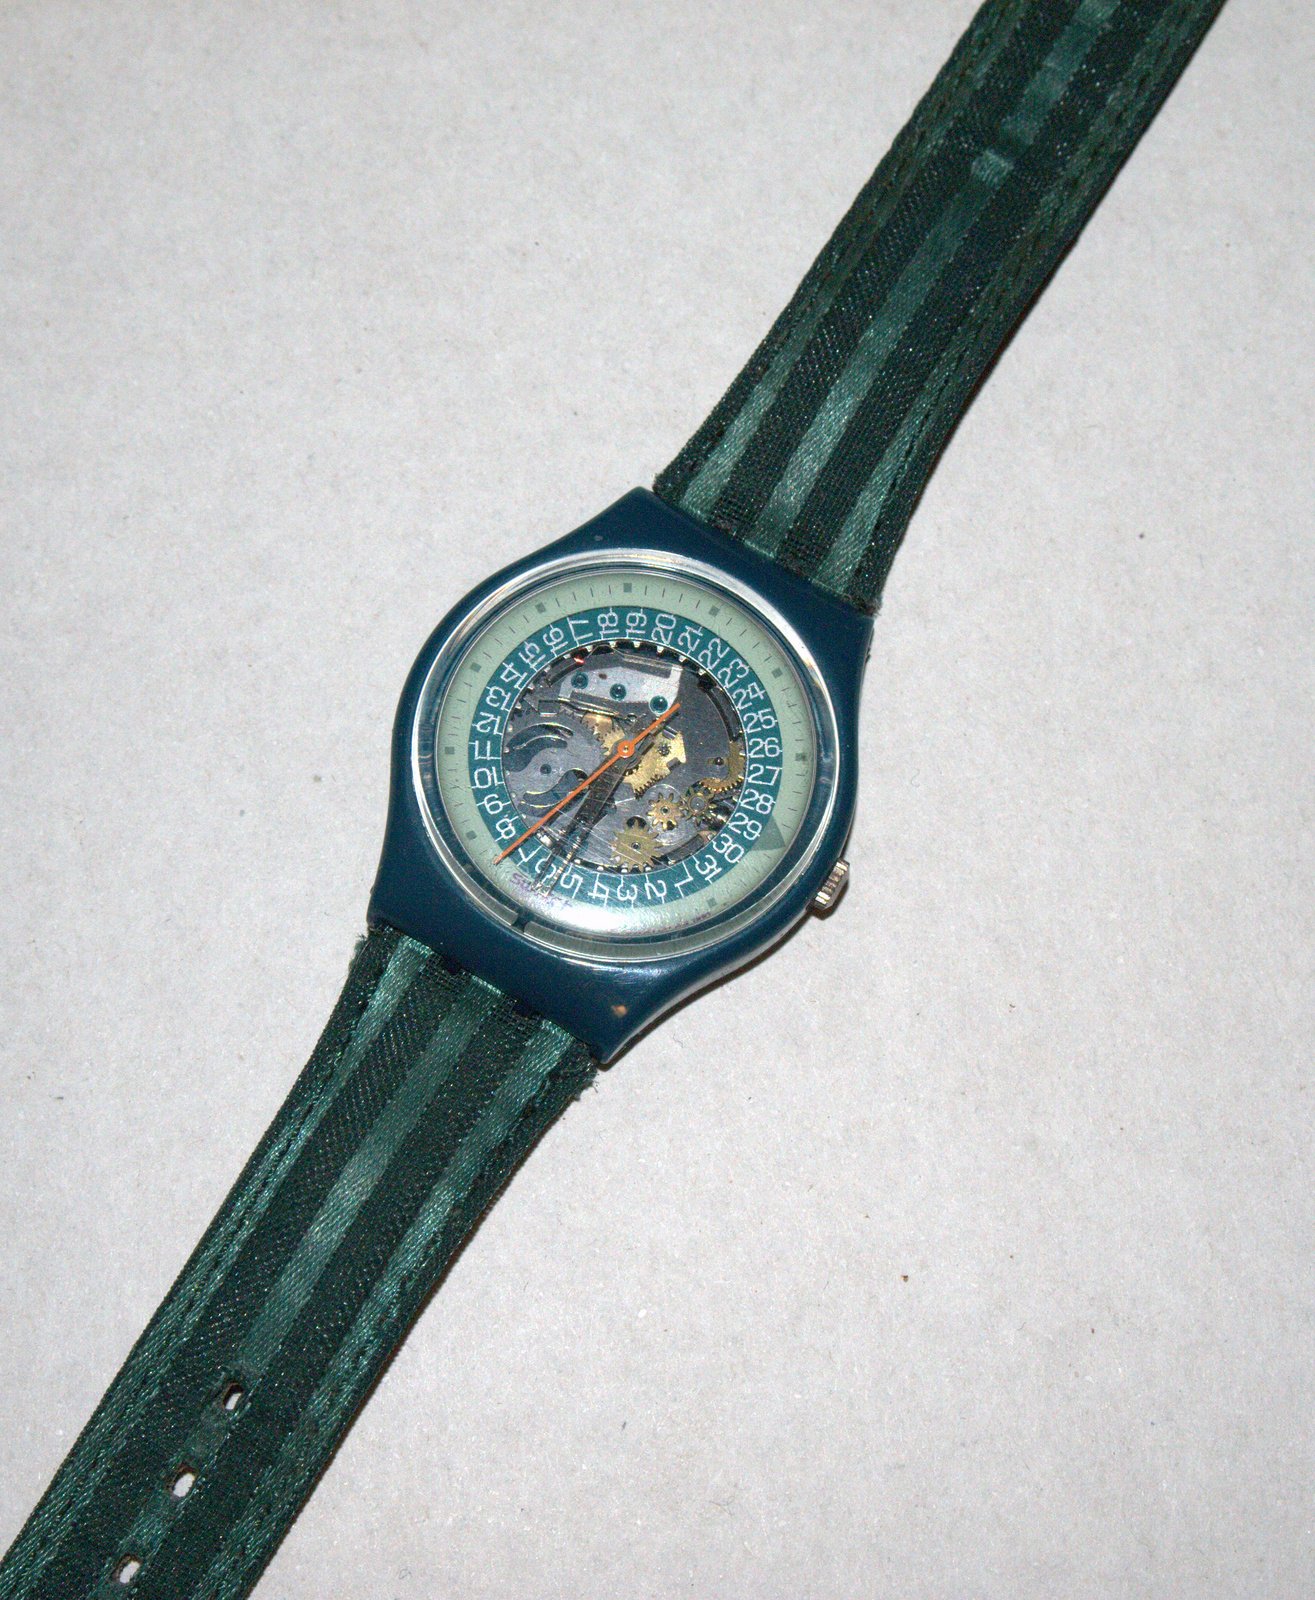 SWATCH Stop SSB100 Jess' Rush 1993 Swiss Made Wristwatch Rubber Strap Vintage